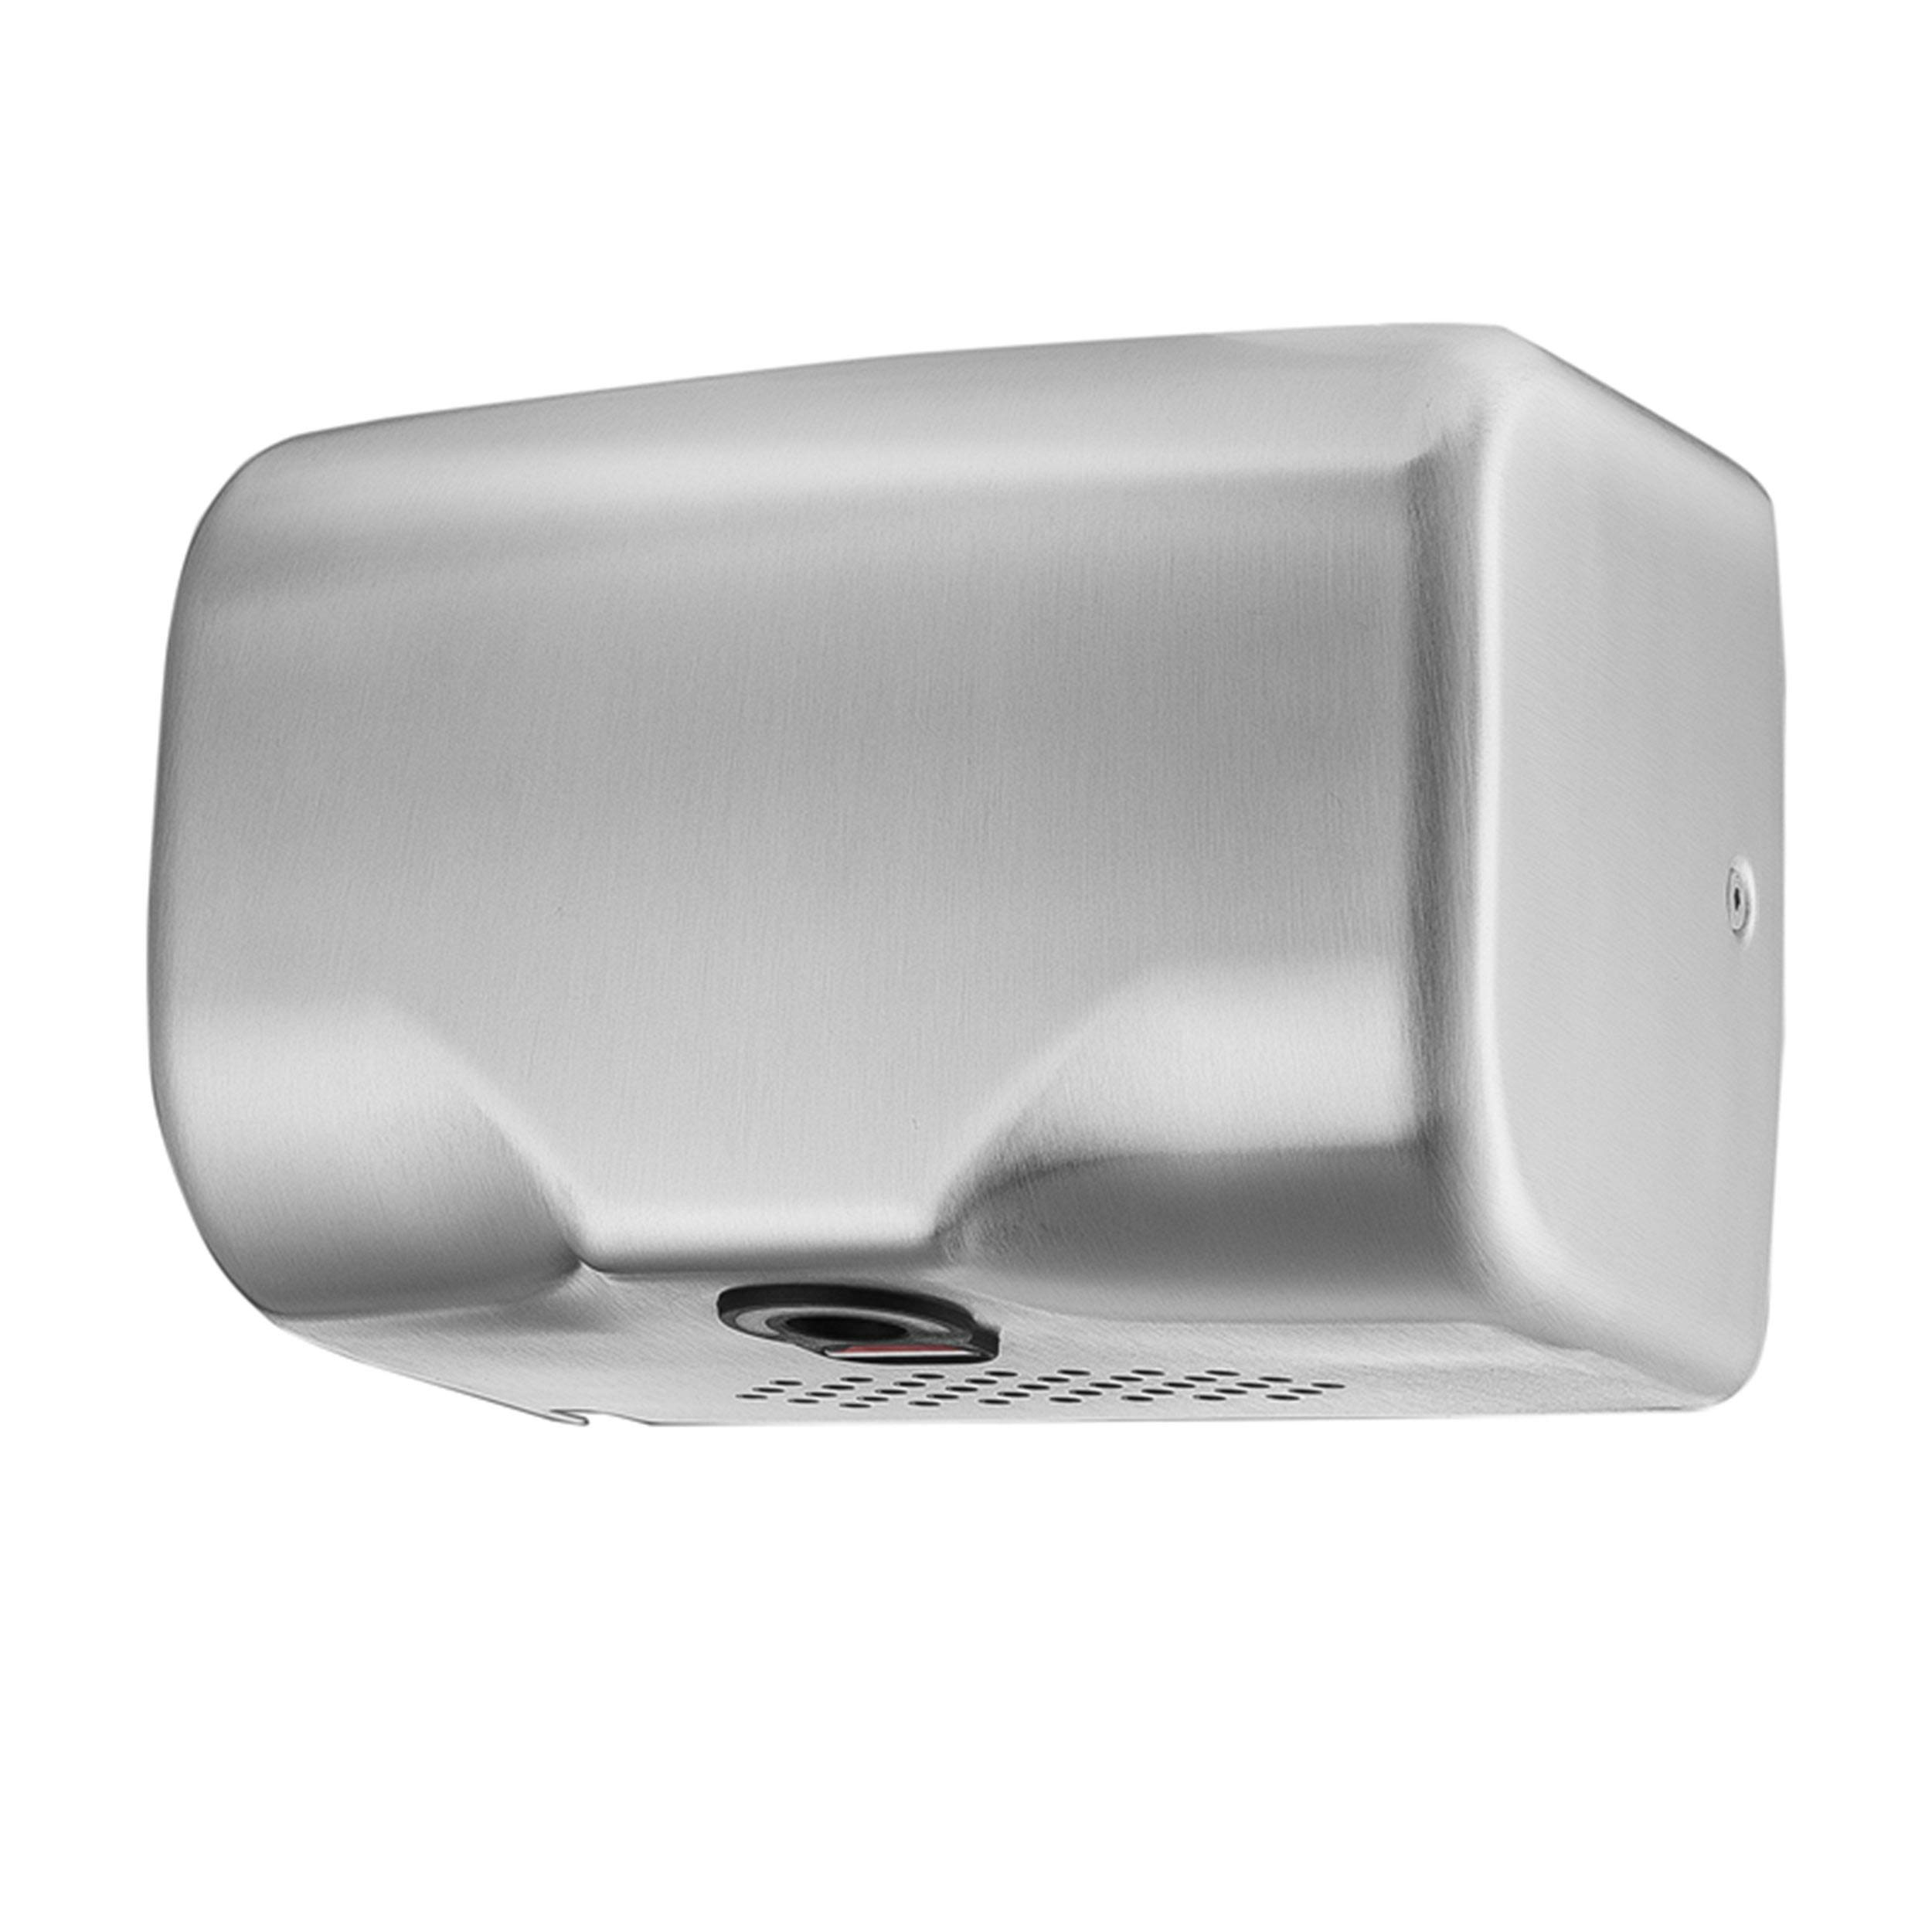 ASIALEO Hand Dryer Commercial,High Speed Automatic Electric Hand Dryers for Bathrooms Restrooms,Heavy Duty,Hot/Cold Air,Stainless Steel Cover,Surface Mount,Innovative Compact Design,Easy Installation by ASIALEO